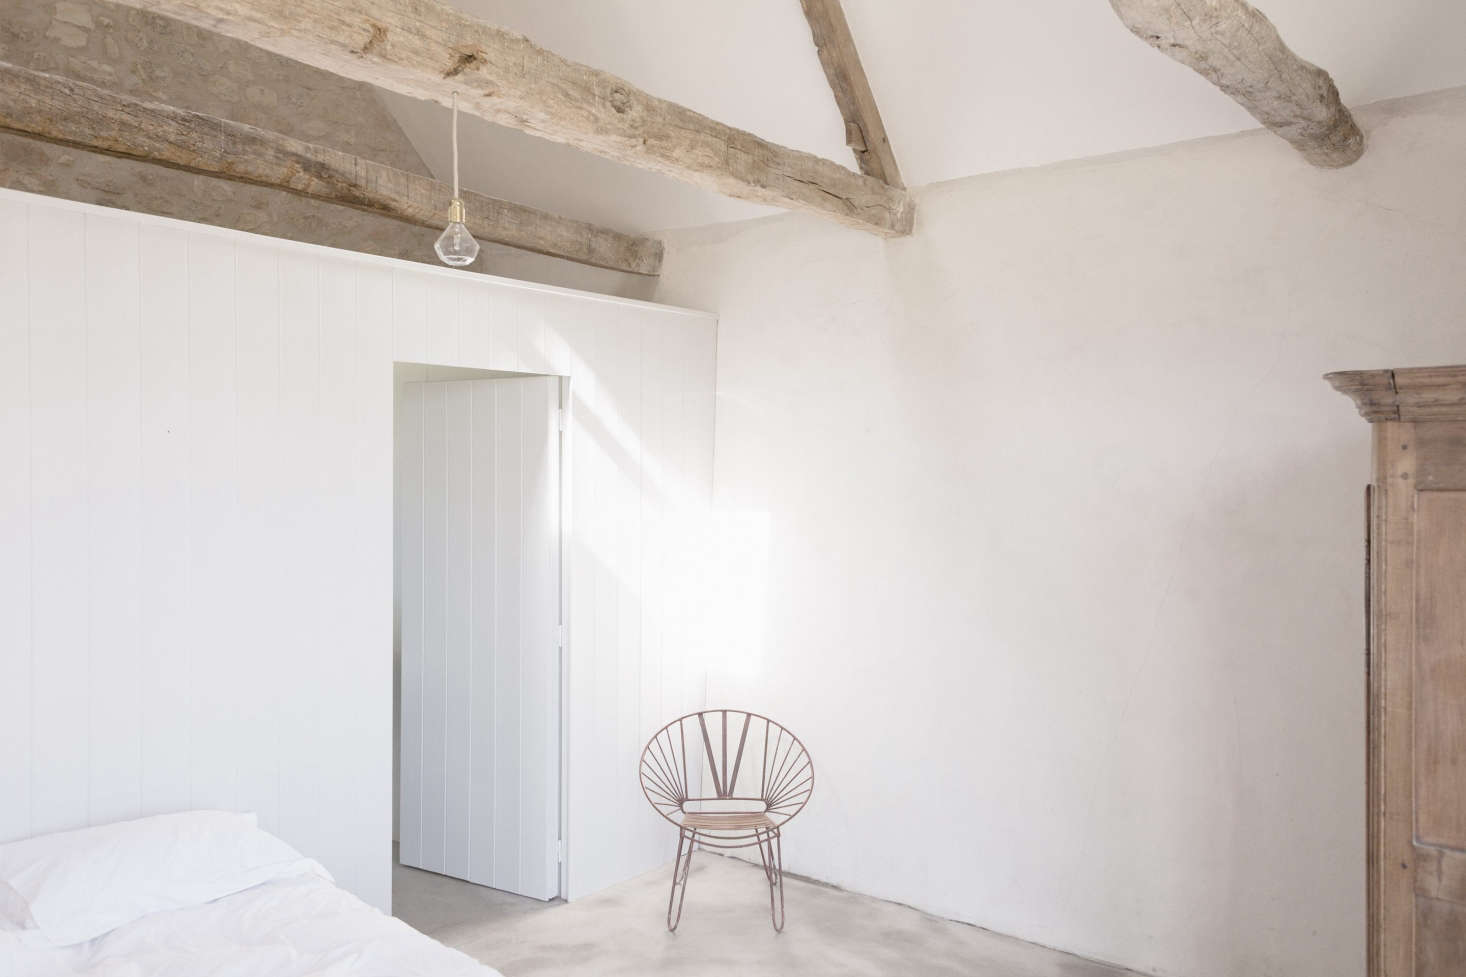 The exposed beams are celebrated in the sparsely decorated bedroom.